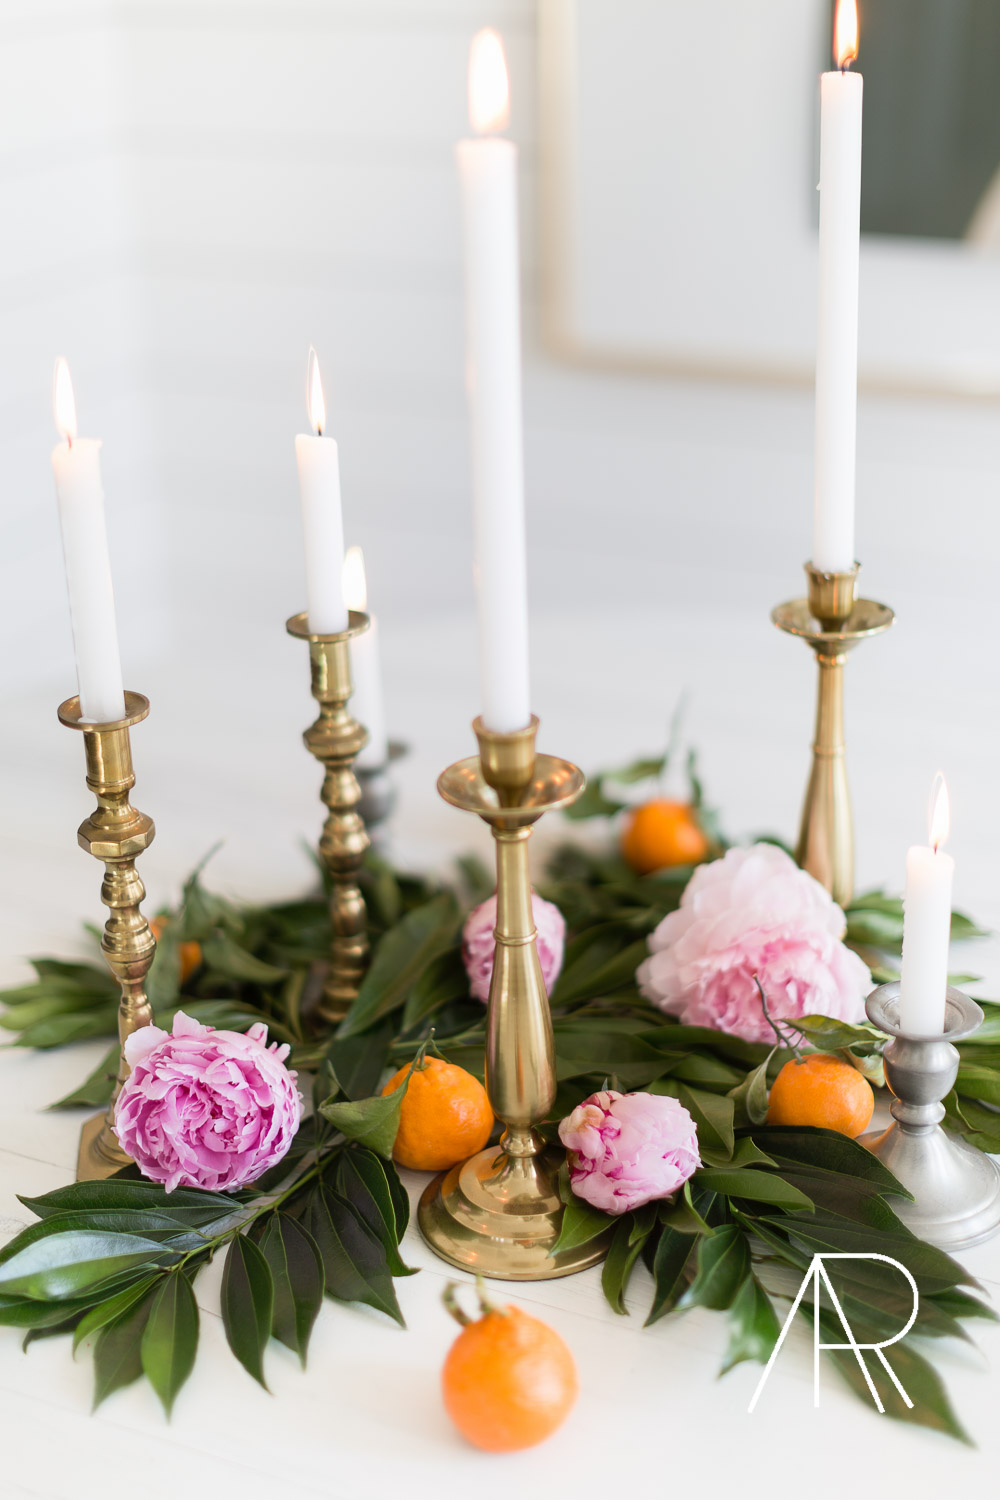 Alyssa Rosenheck's The New Southern Simple Holiday Centerpiece and Grocery Store One Stop Shop. Centerpiece Styling, Holiday Decor, Tablescape, 2018, Nashville, TN ©AlyssaRosenheck